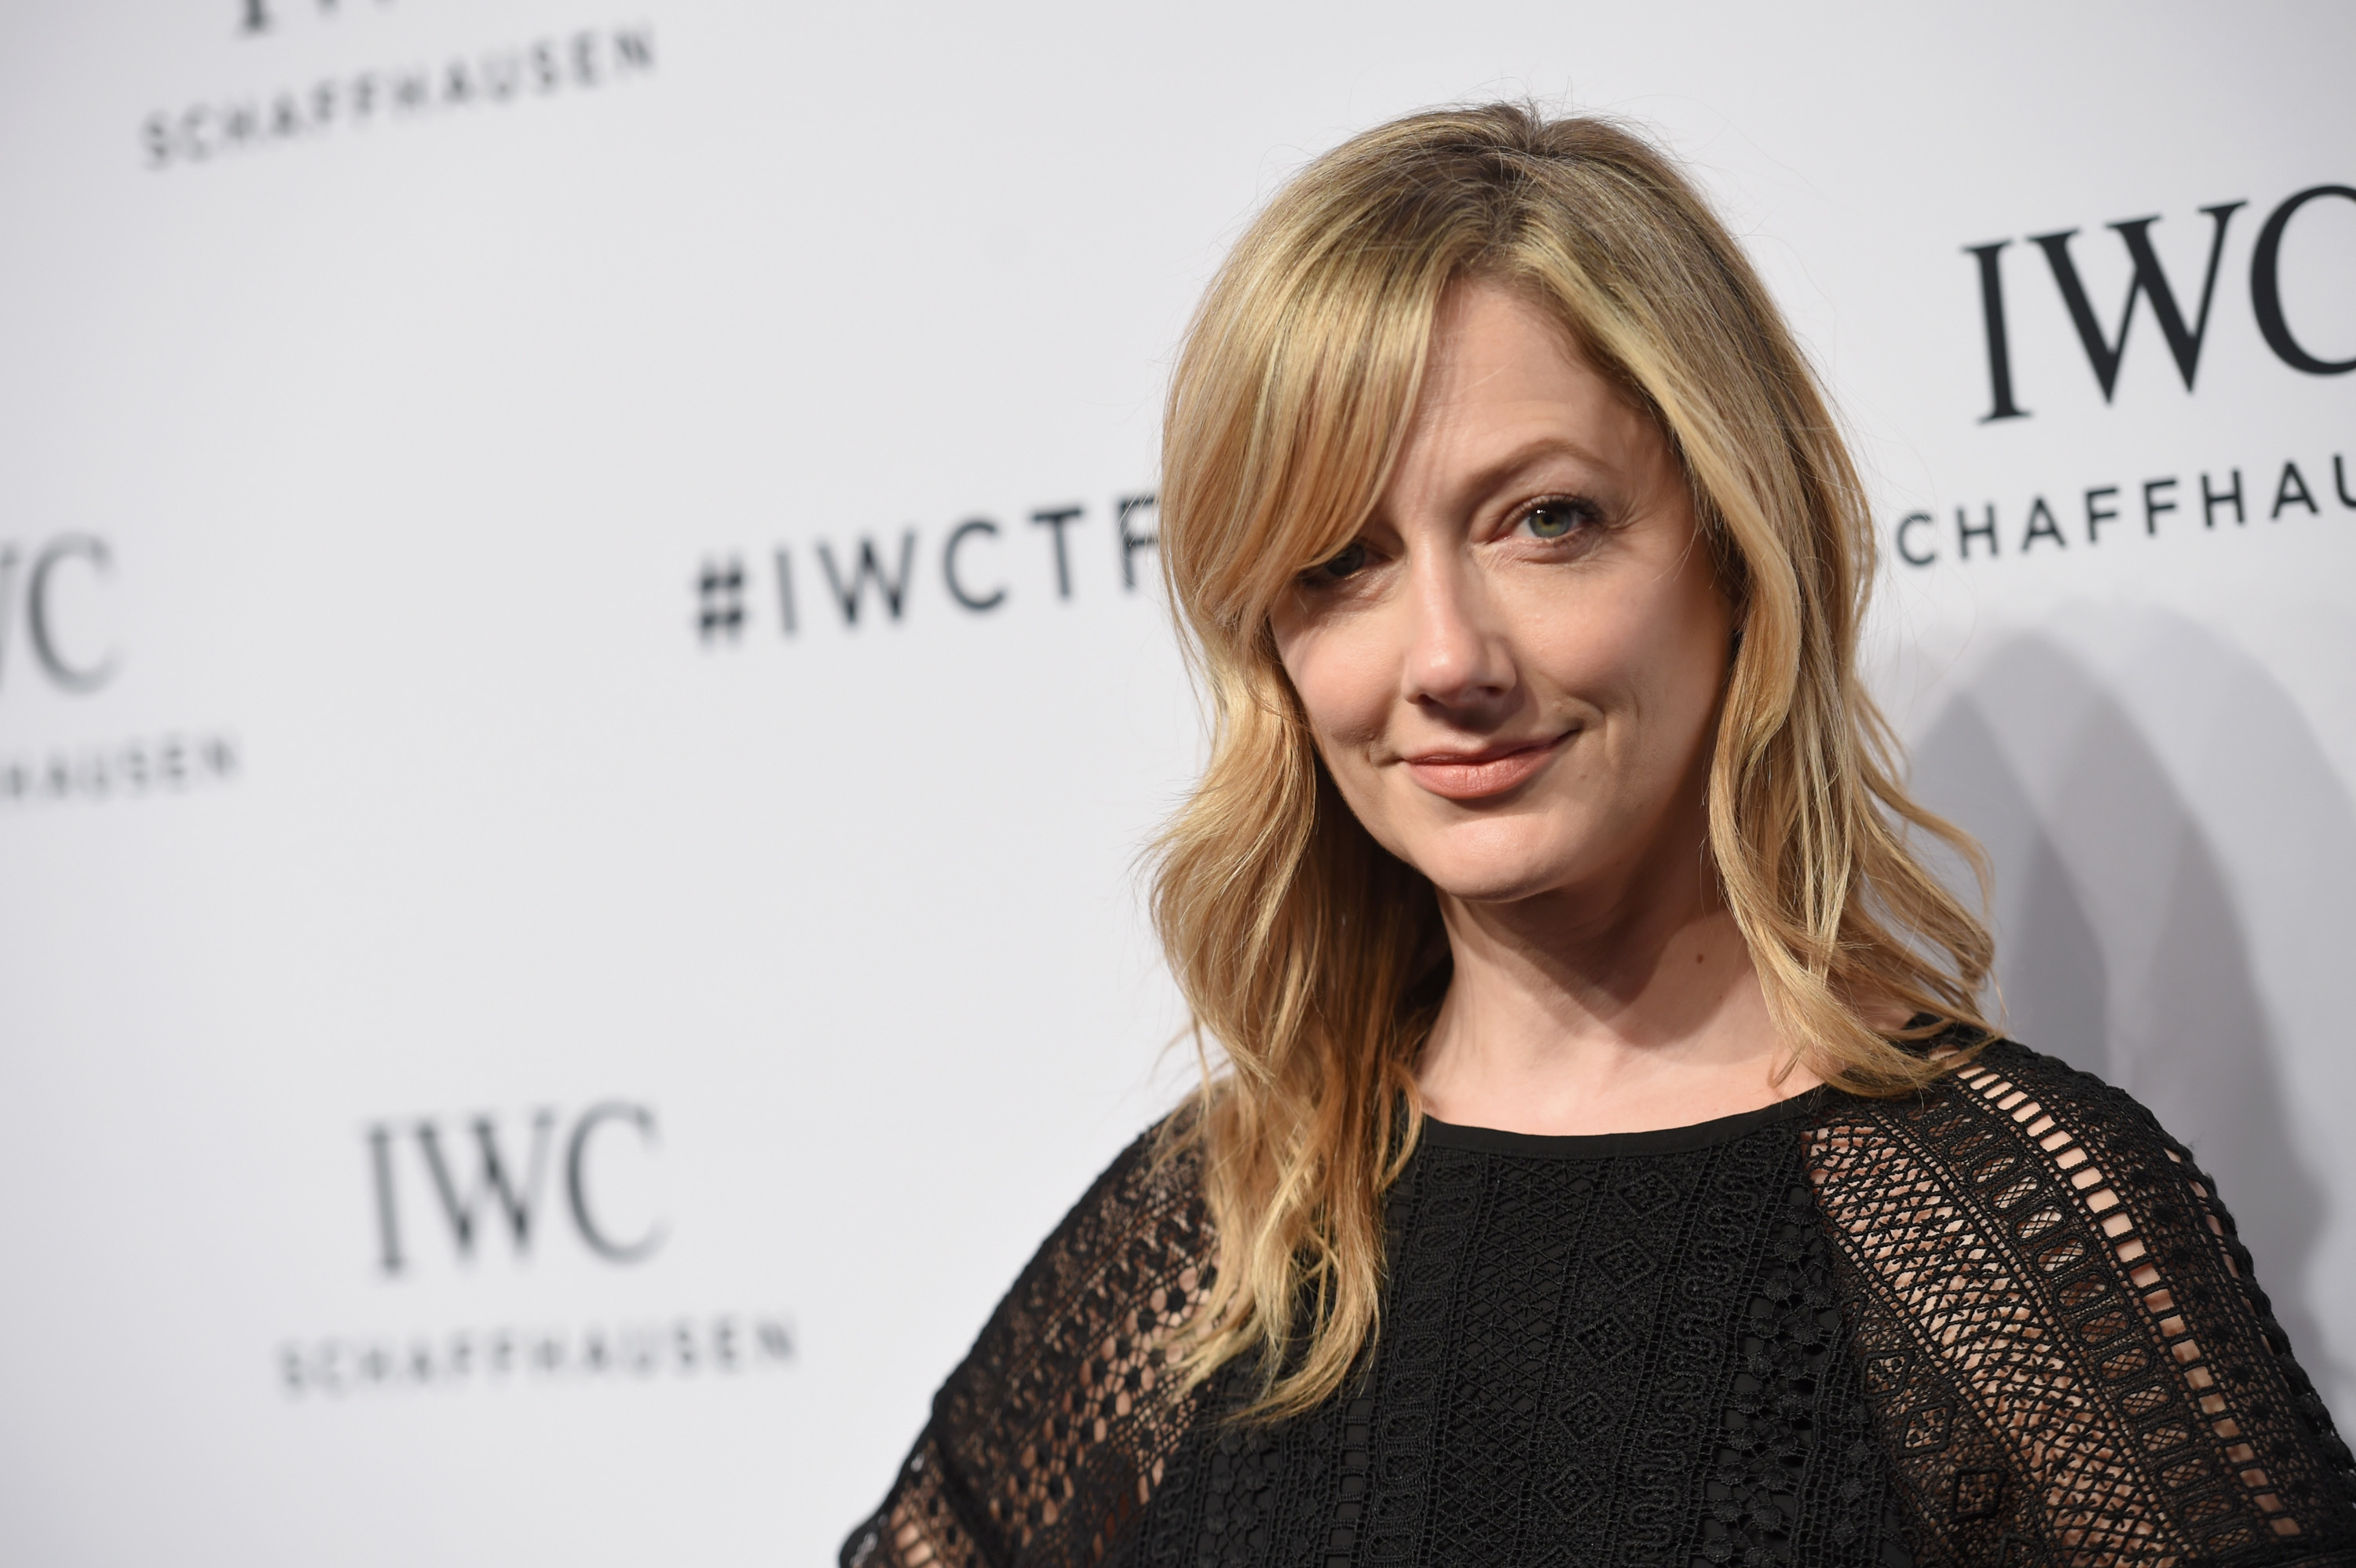 """Actress Judy Greer attends the exclusive gala event """"For the Love of Cinema"""" during the Tribeca Film Festival hosted by luxury watch manufacturer IWC Schaffhausen on April 14, 2016 in New York City."""